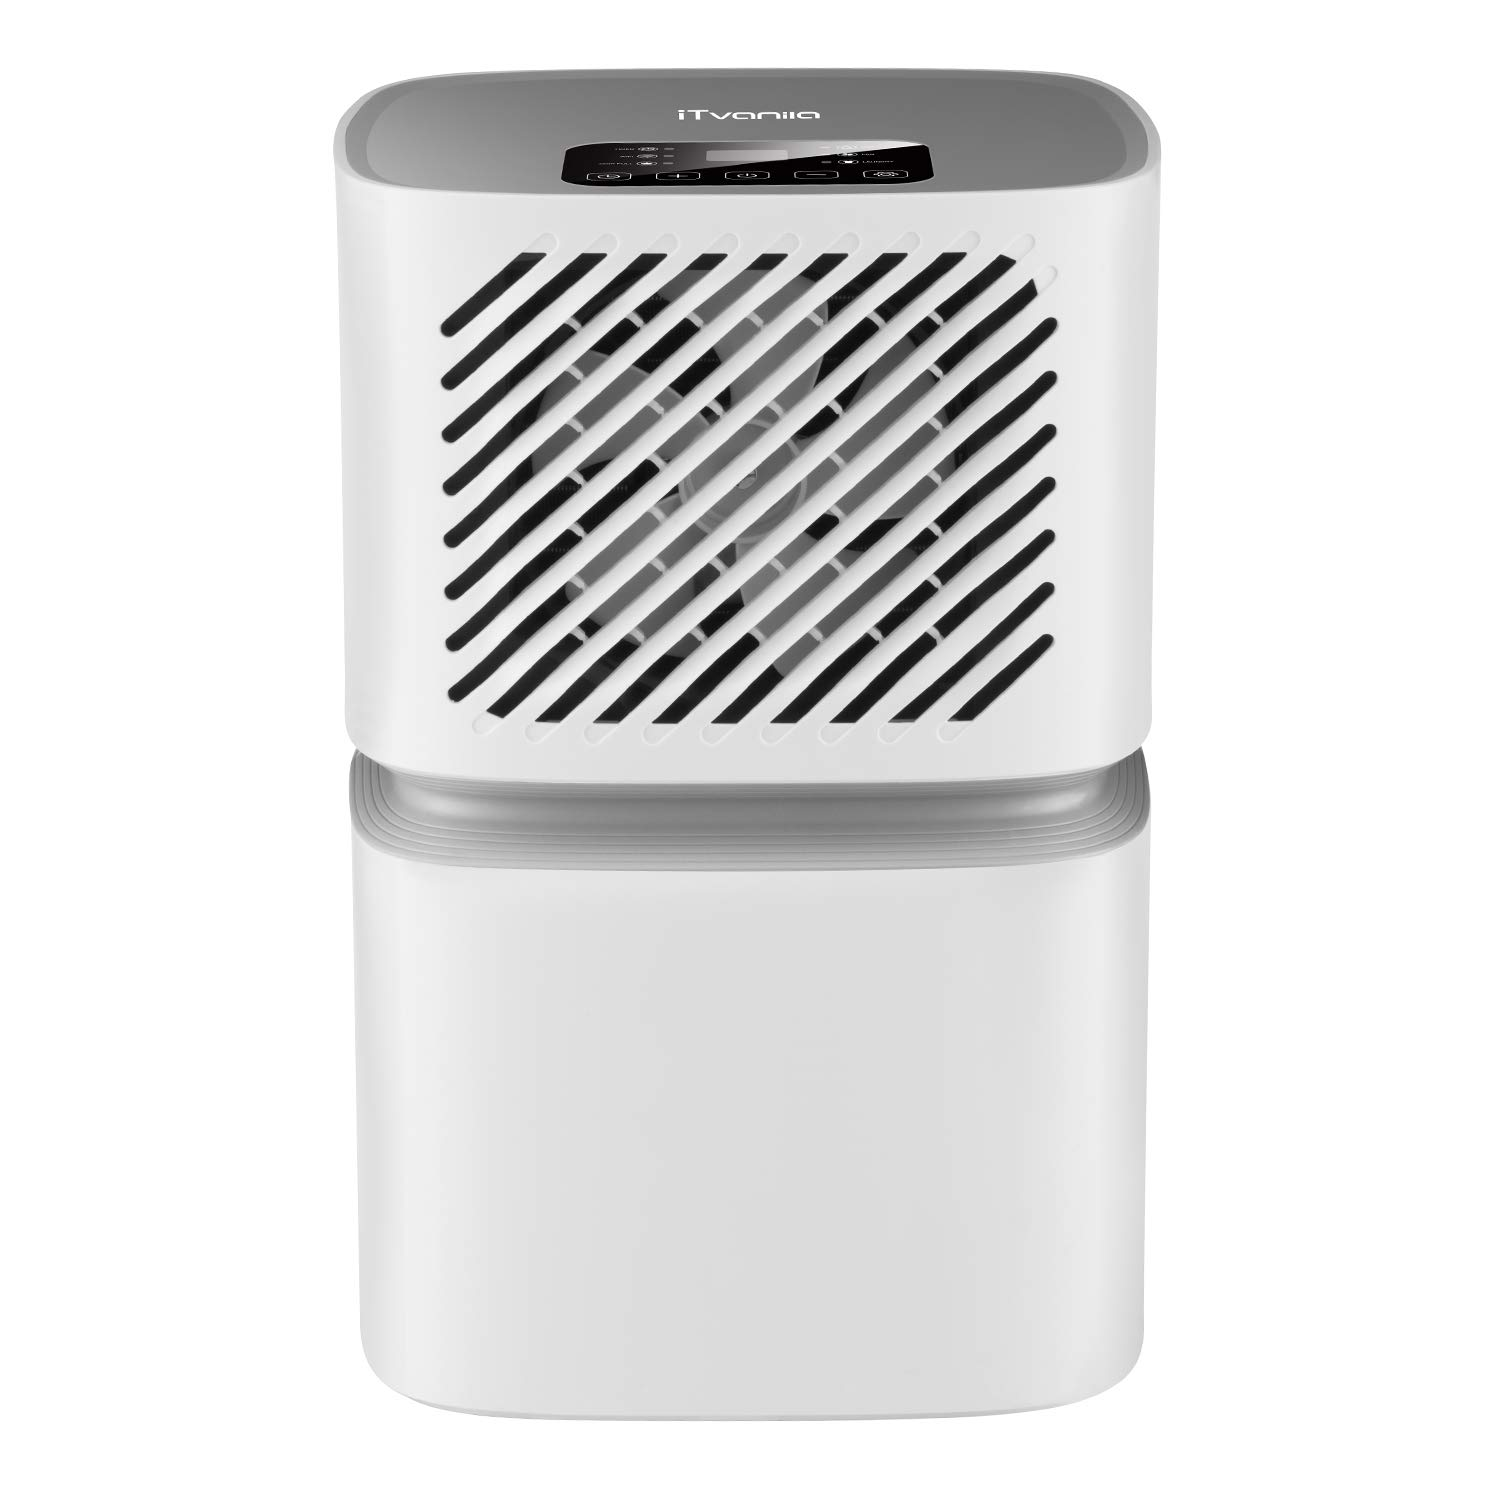 Dehumidifier,12L/day Dehumidifier for Home, WI-FI WLAN technology, LED control panel, dehumidifiers for condensation, moisture and mold with continuous dehumidification, Smart Auto function, fan and laundry drying, tank full modes (White) iTvanila